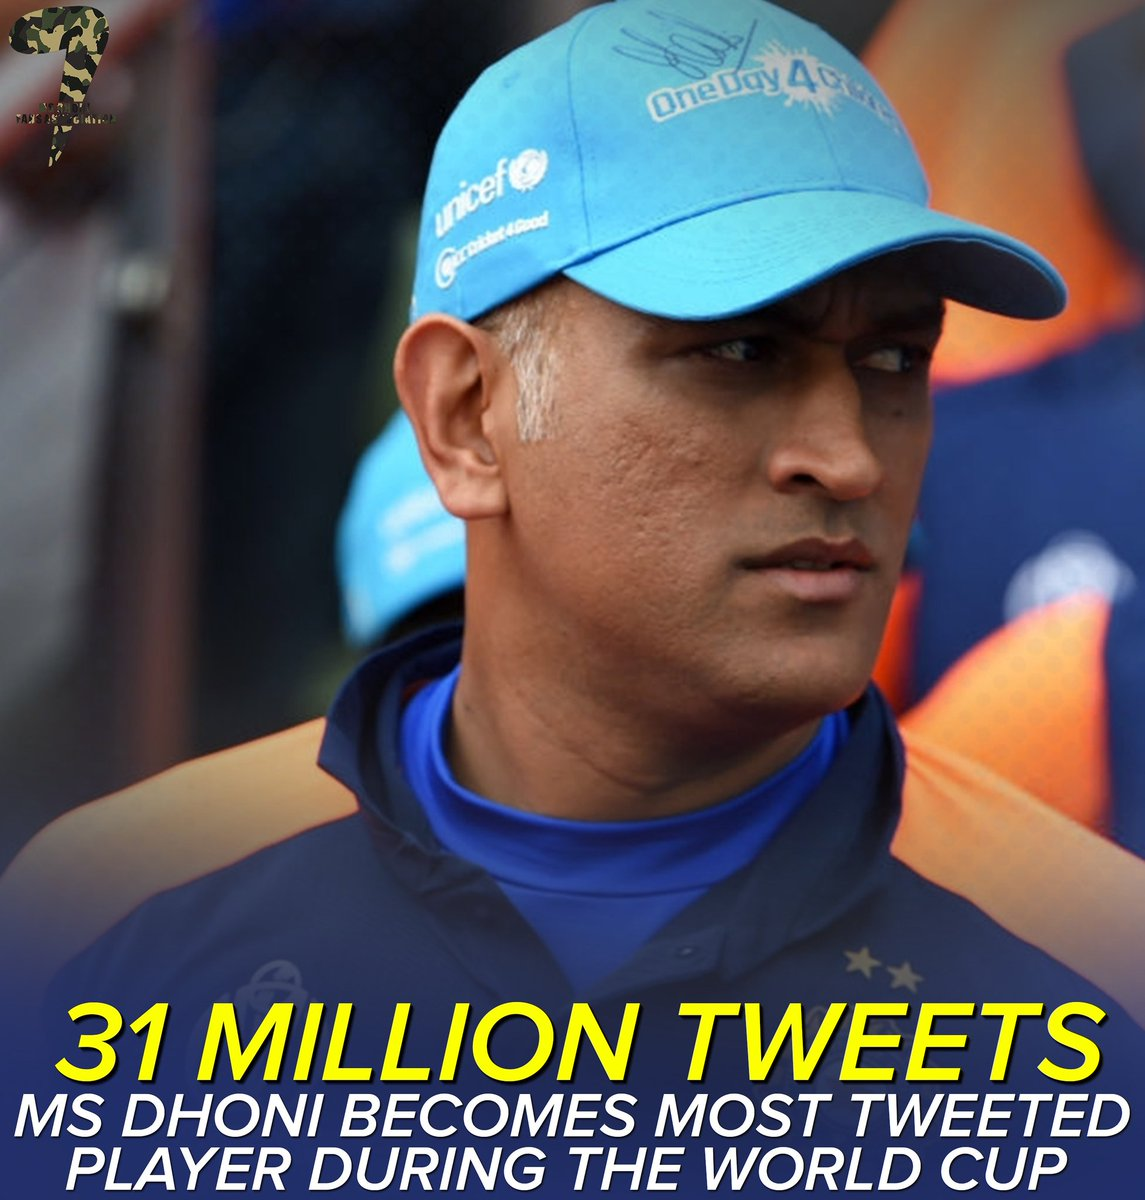 .@msdhoni is not just a name, but an Emotion  Most tweeted player during CWC19 with over 31 million tweets!  PS, He is the most inactive cricketer on social media.  #DhoniAtCWC19 #MSDhoni #Dhoni<br>http://pic.twitter.com/vjcwvPS1xw